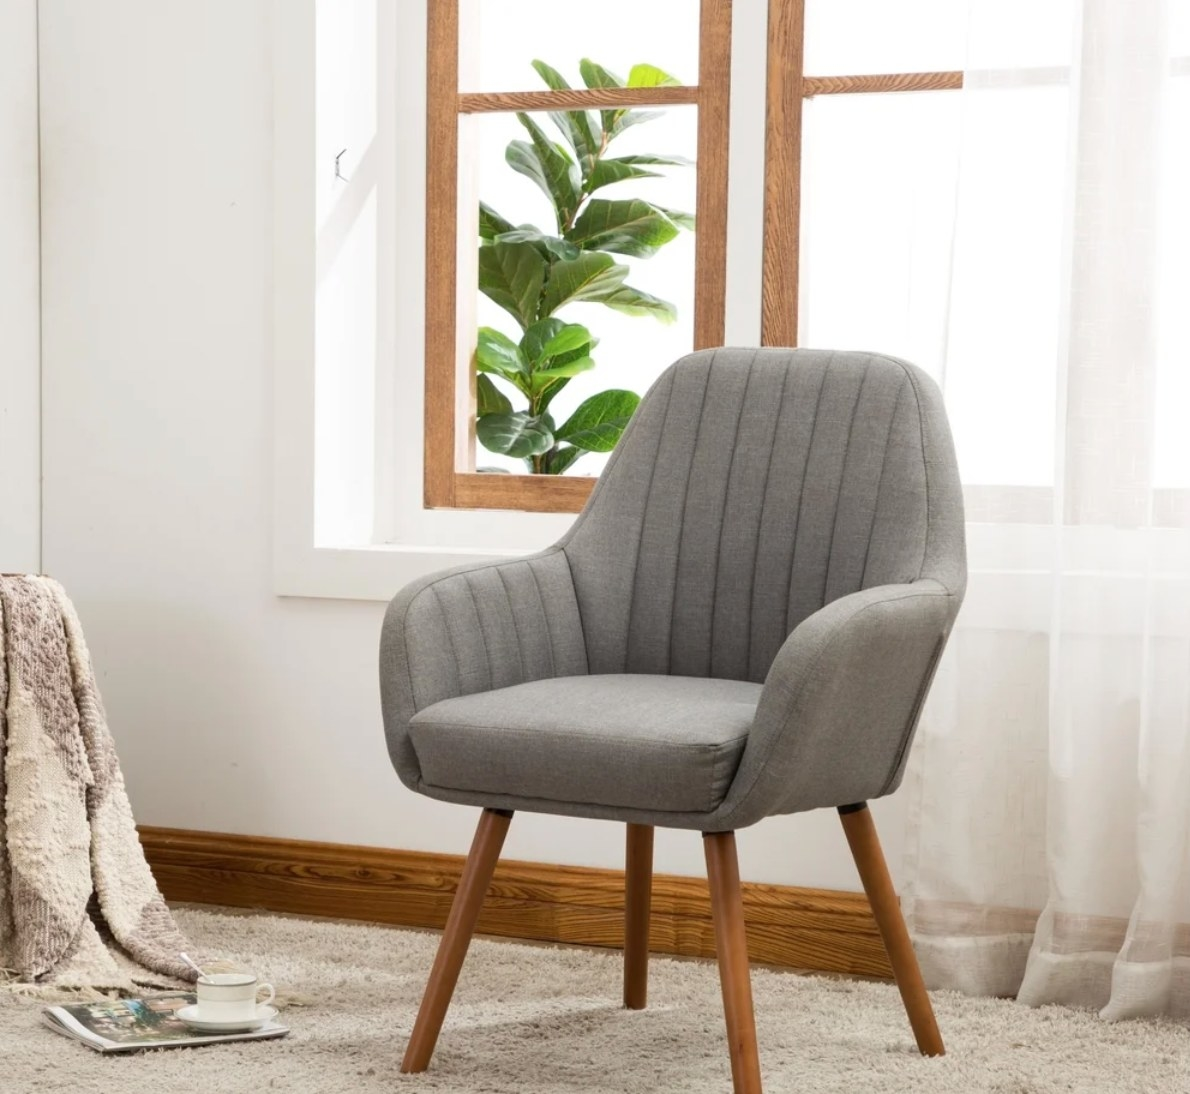 The accent chair in gray